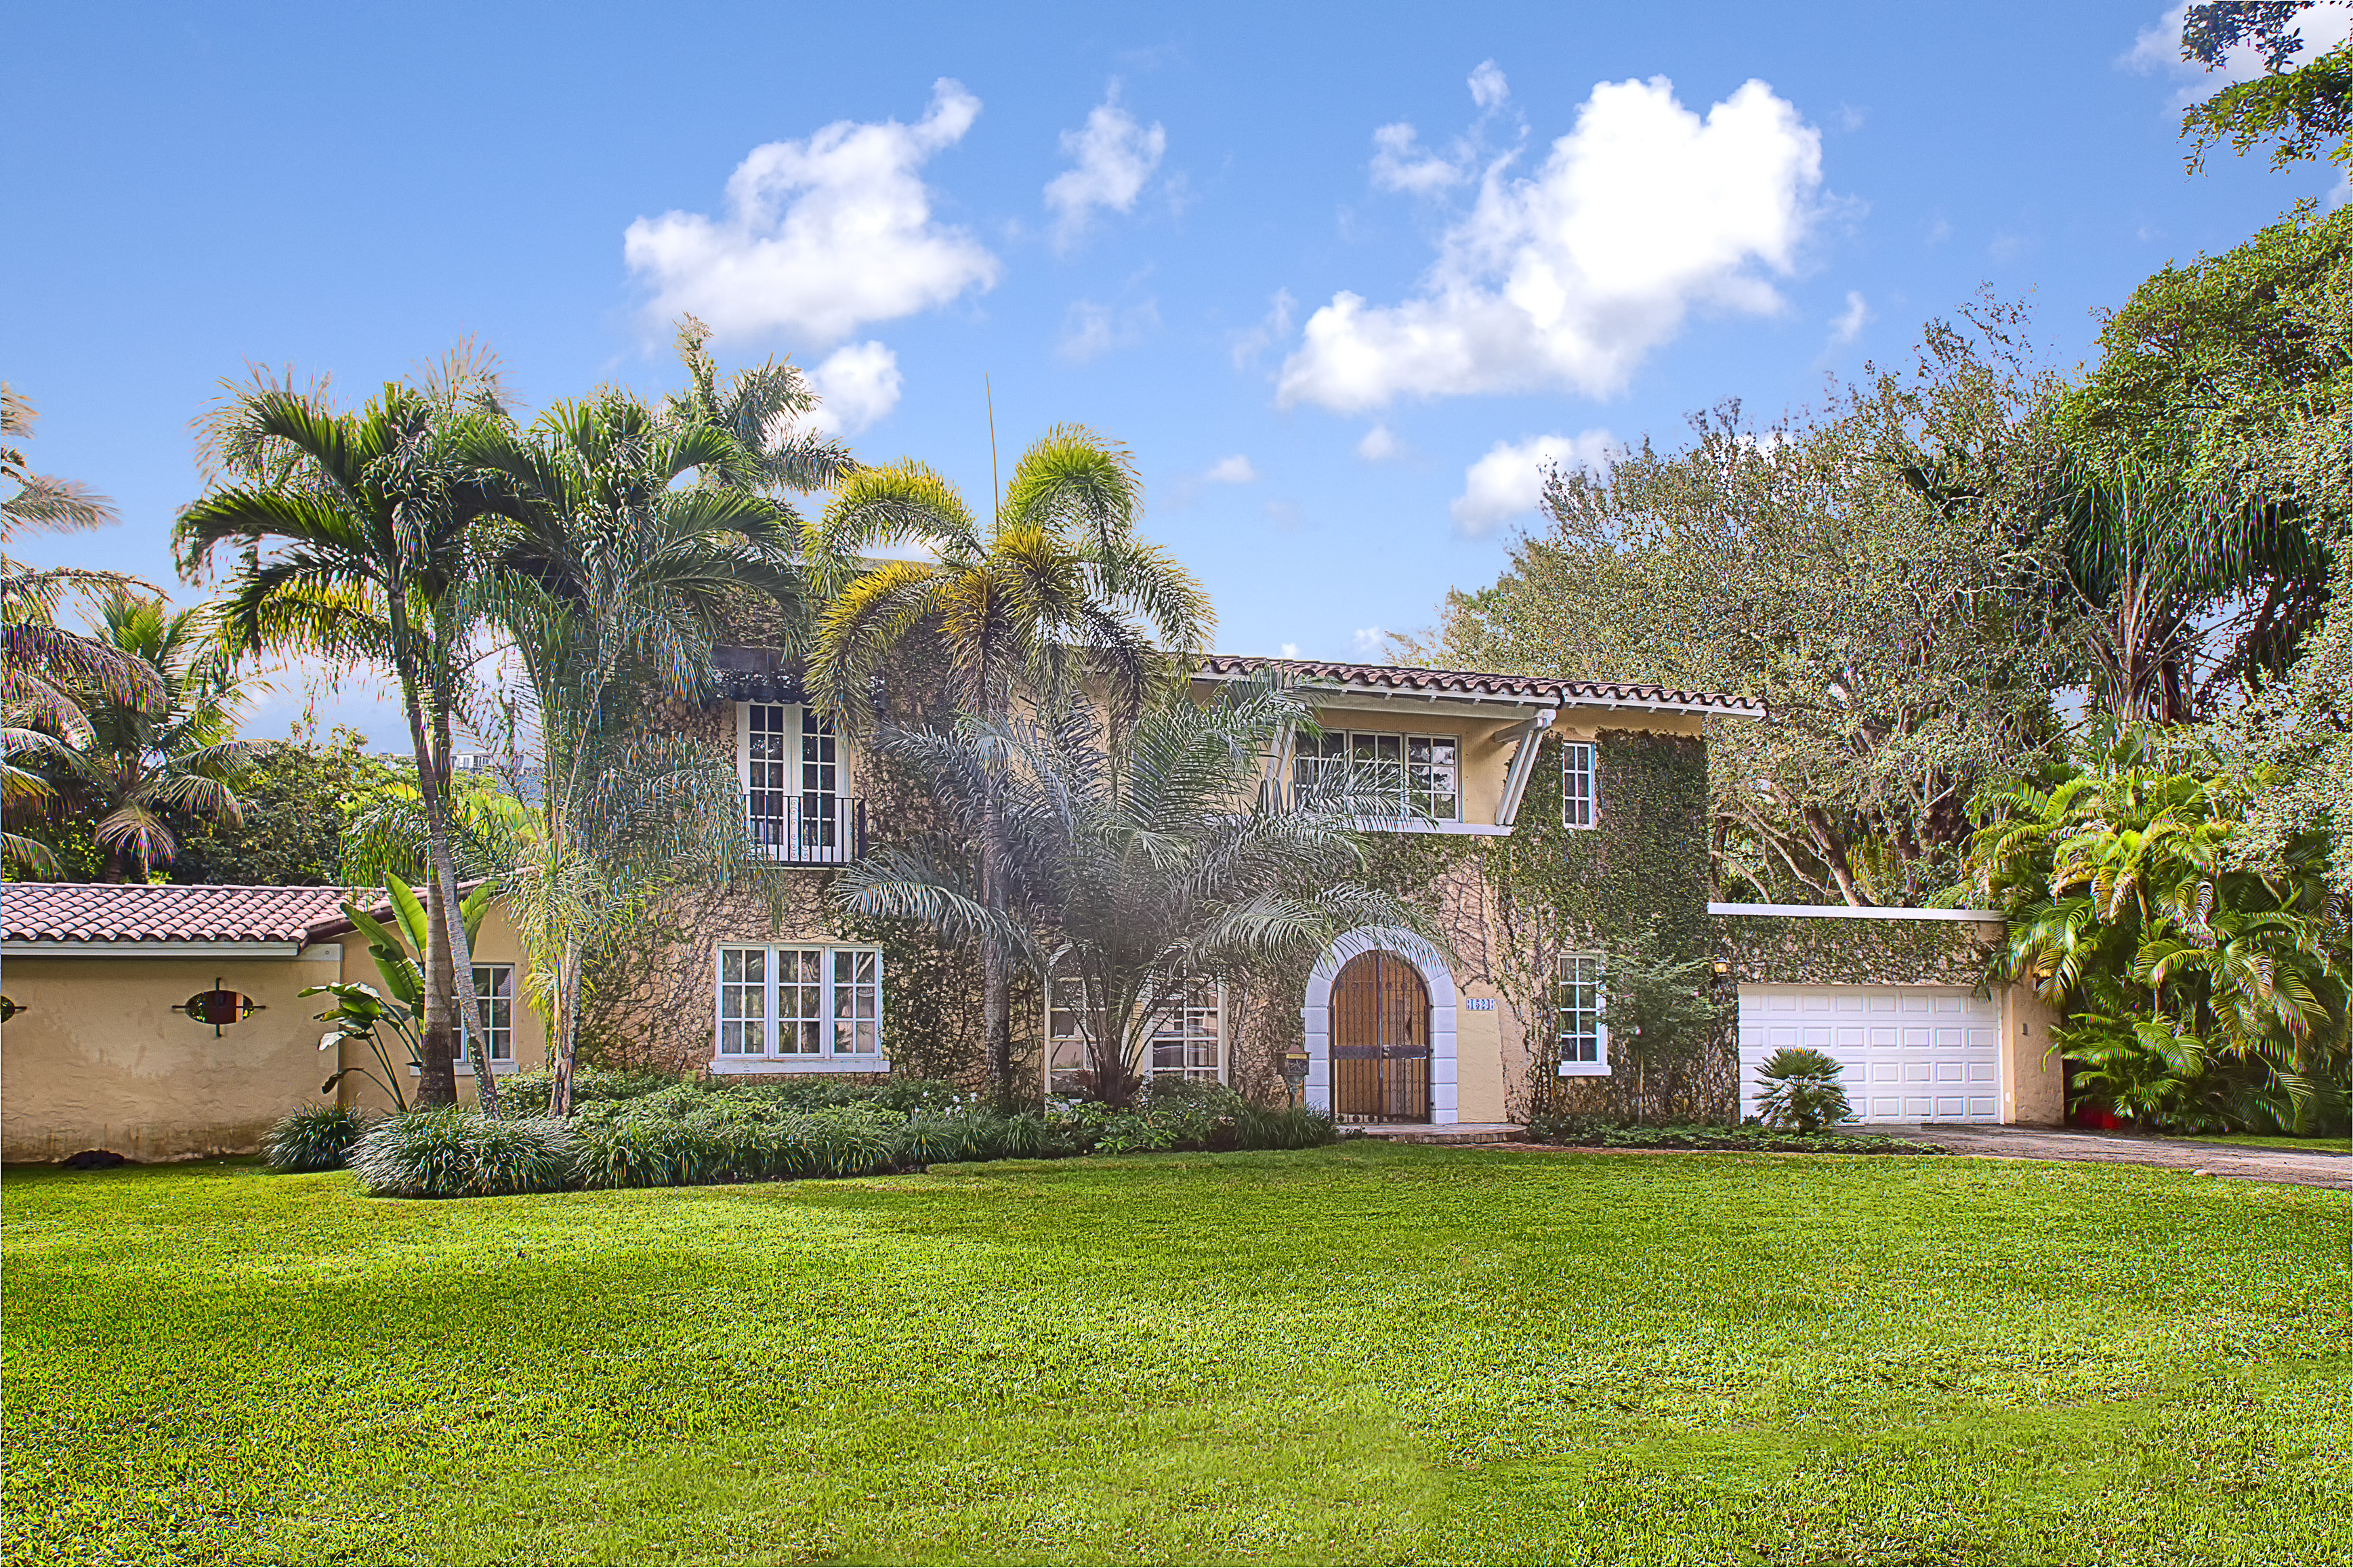 1524 Garcia Coral Gables Old Spanish